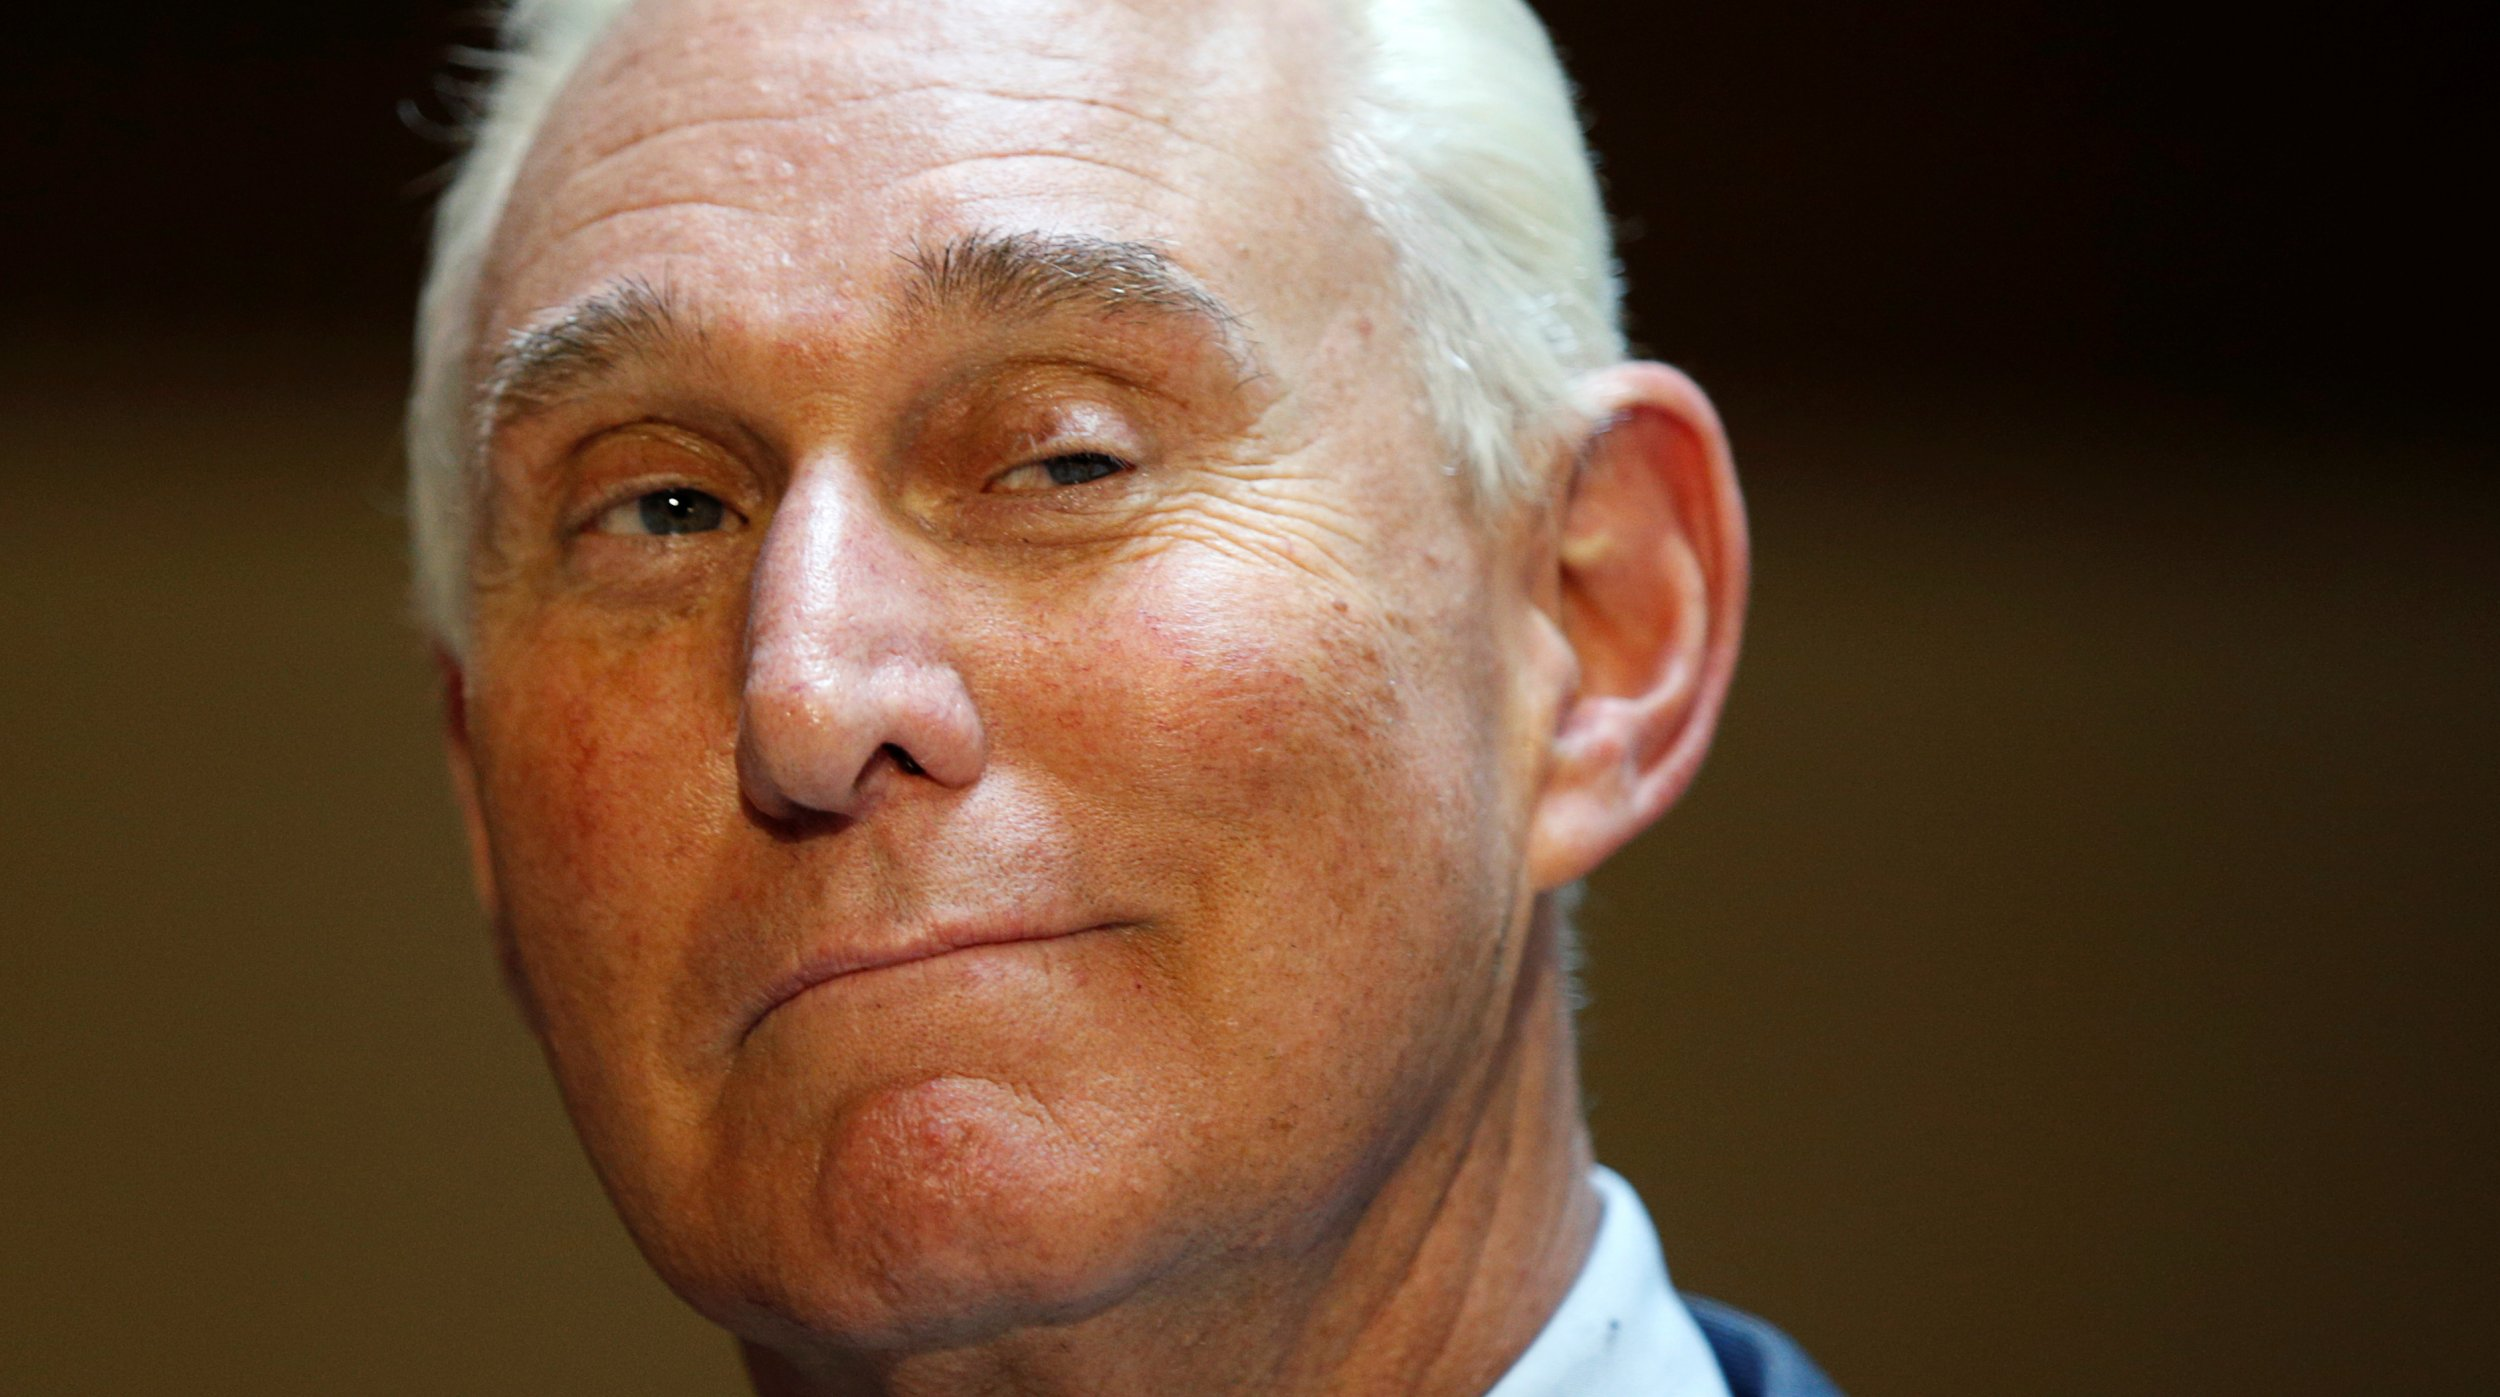 It S Painfully Obvious Trump Will Be Charged By Mueller Says President S Ally Roger Stone